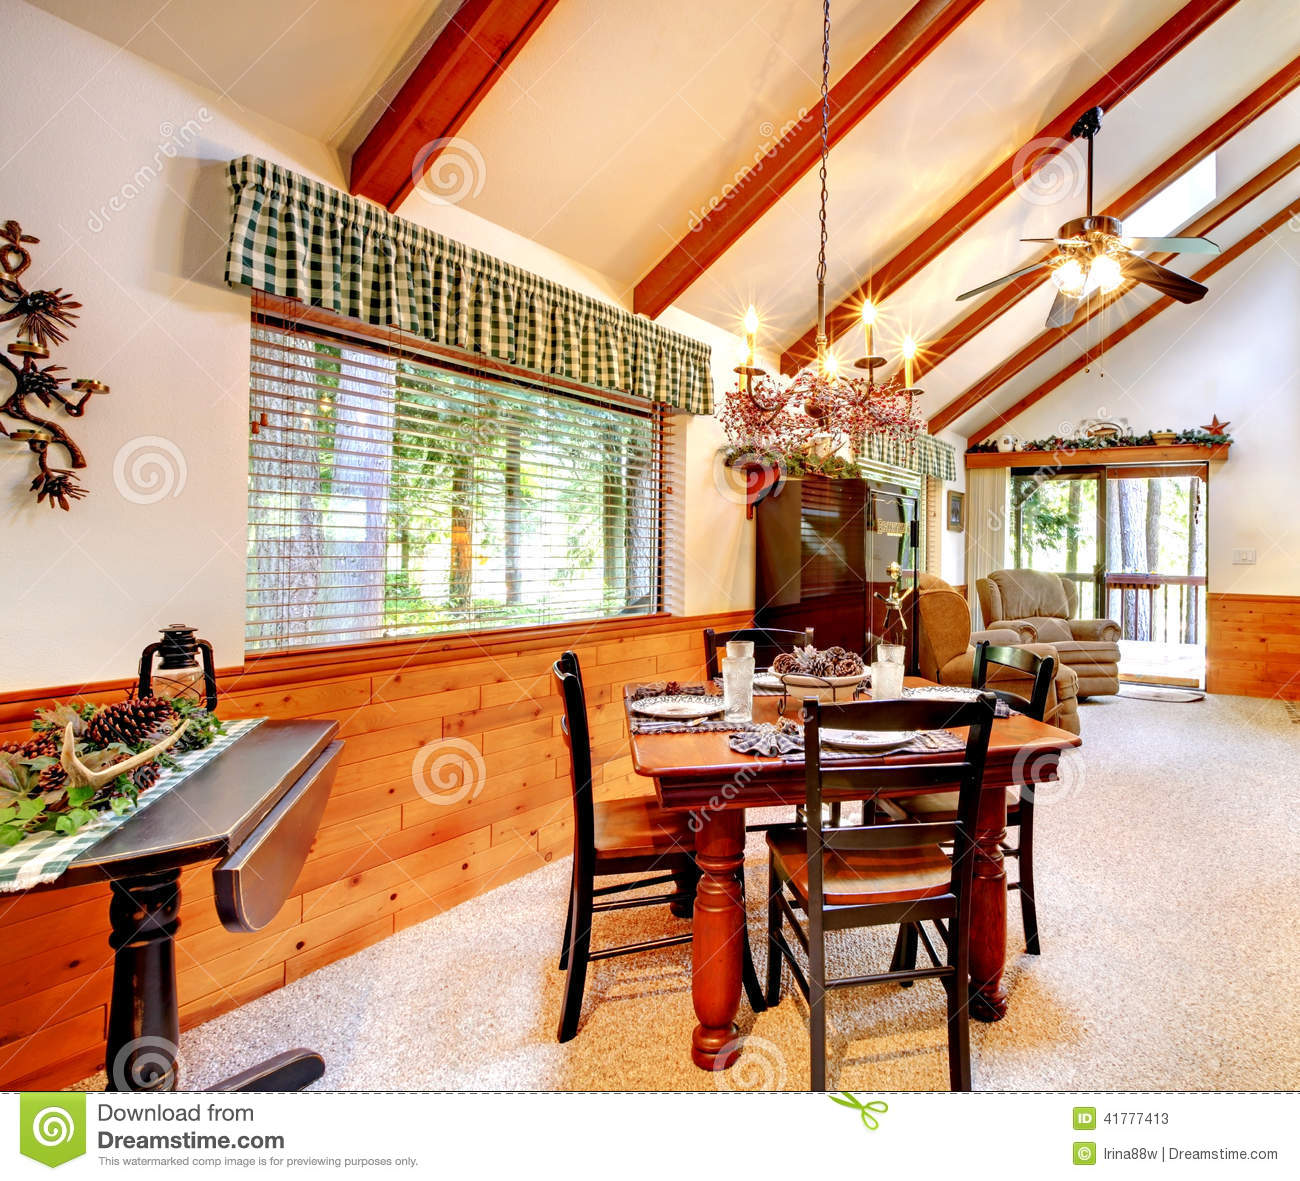 Log Cabin House Interior Stock Image. Image Of Inside